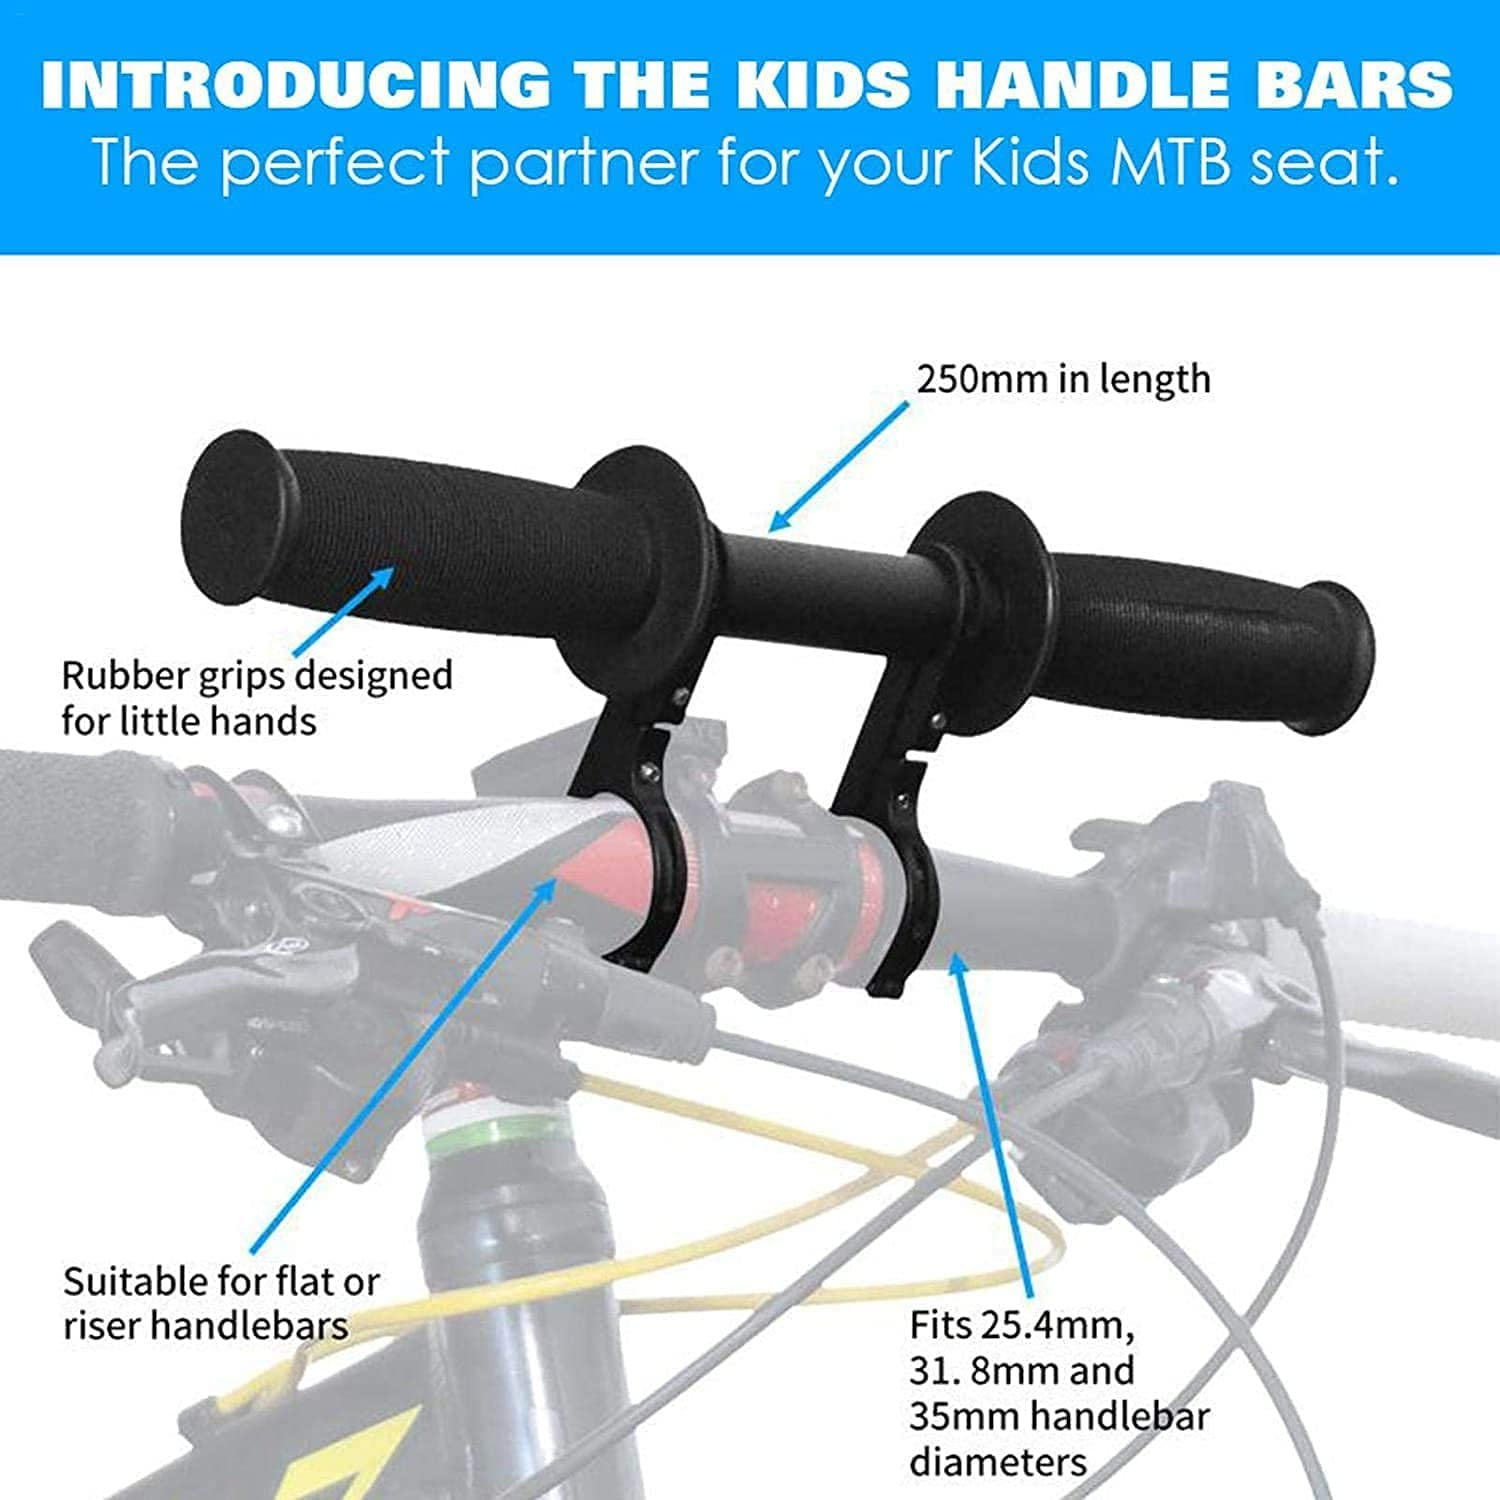 MMUK Kids Bike Seat Front with Handlebar Attachment,Kids Bike Seat Detachable for All Mountain Bikes,Portable Kids MTB Handlebar Attachment Easy to Install Bike Accessories for 2-5 Years